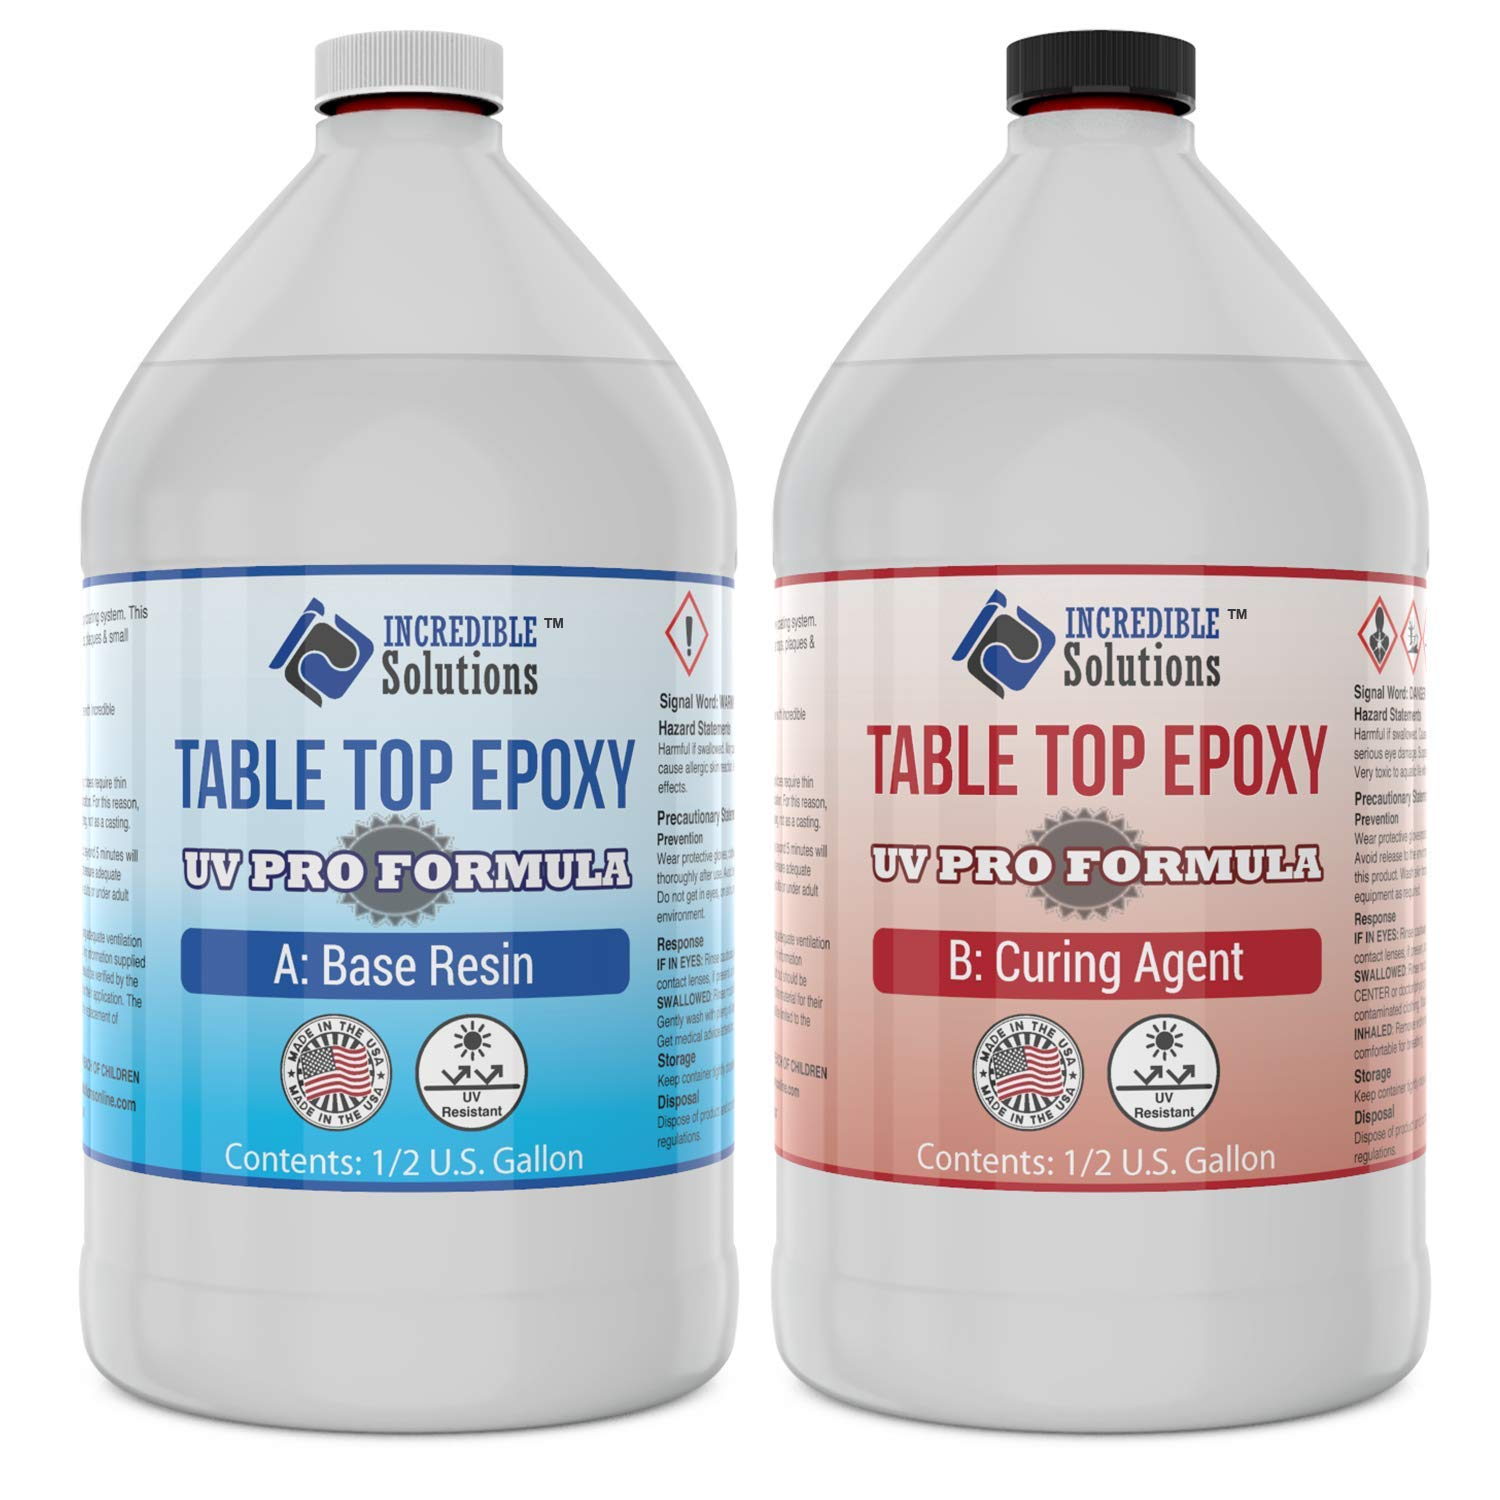 Epoxy Resin Crystal Clear, Table Top & Bar Top Epoxy Coating UV PRO FORMULA, Enhanced UV Resistance For TableTops & Resin Art, 1 Gallon Kit by Incredible Solutions